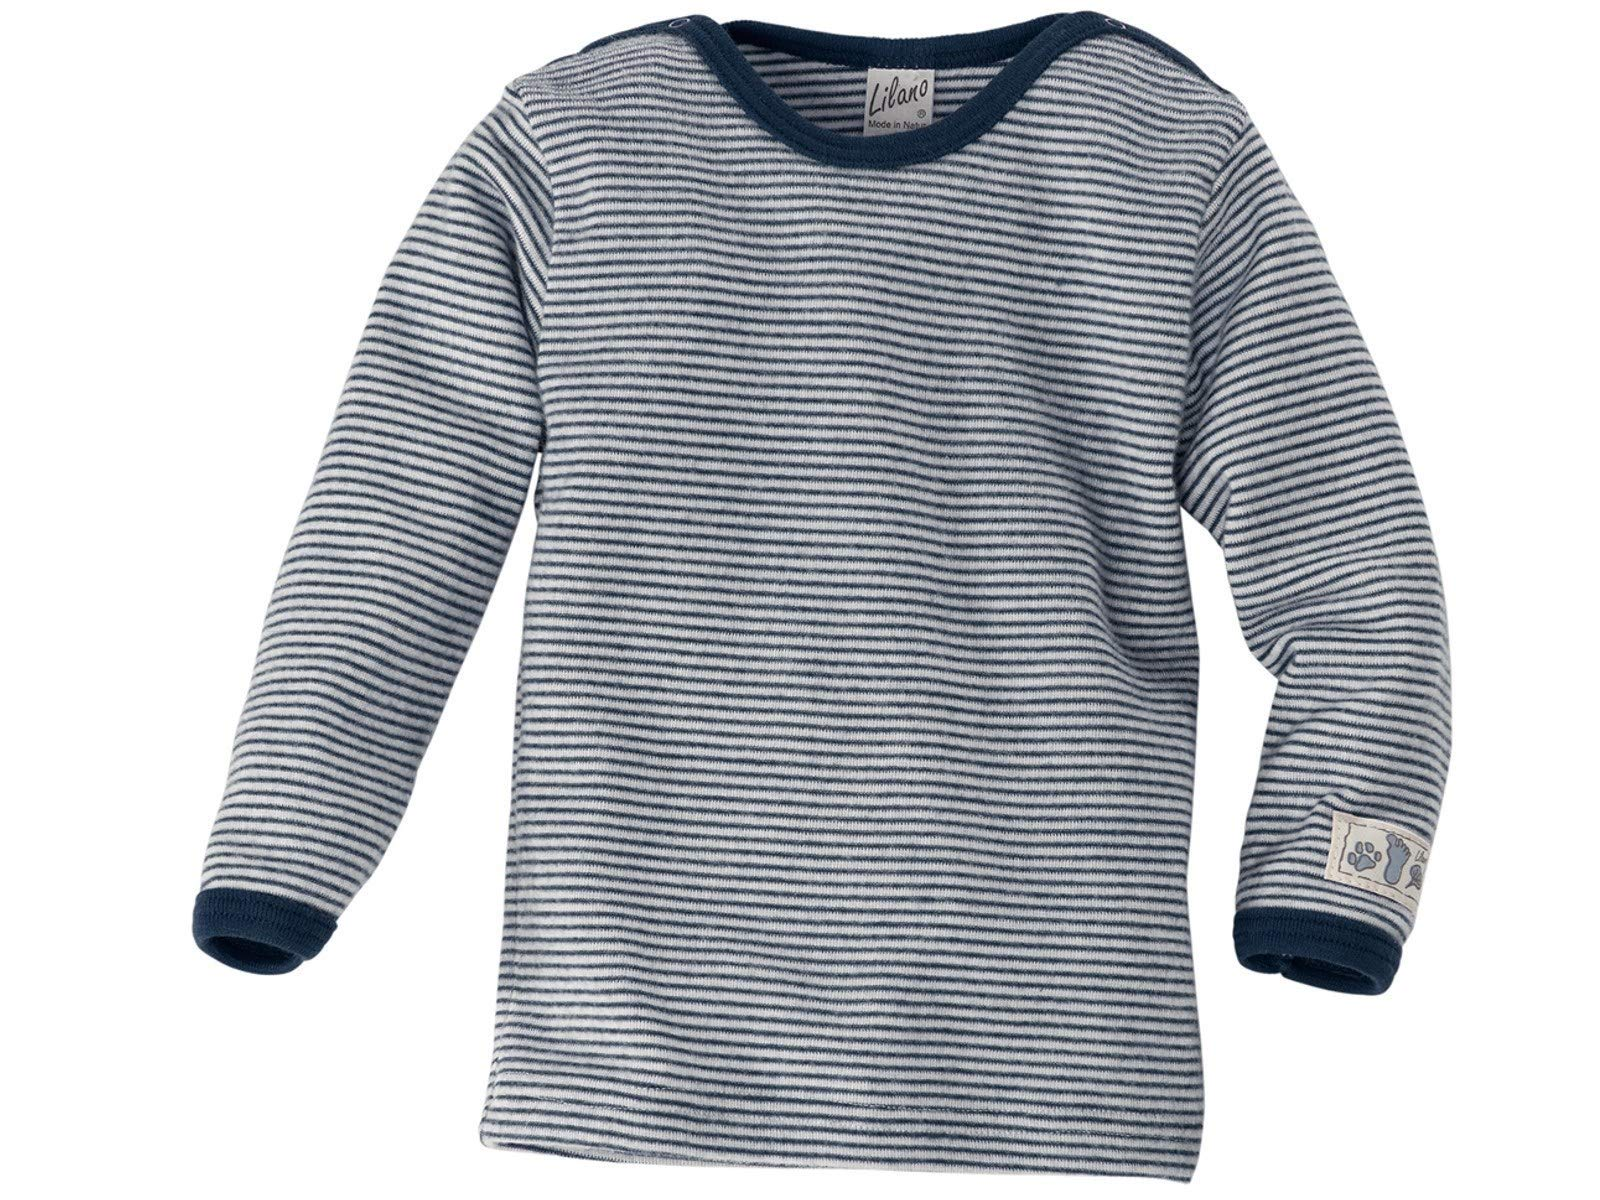 Lilano Organic Merino Wool and Silk Baby T-Shirt Long Sleeve [100306]. Made in Germany. (98 (2T-3T), Blue/Natural) by Lilano